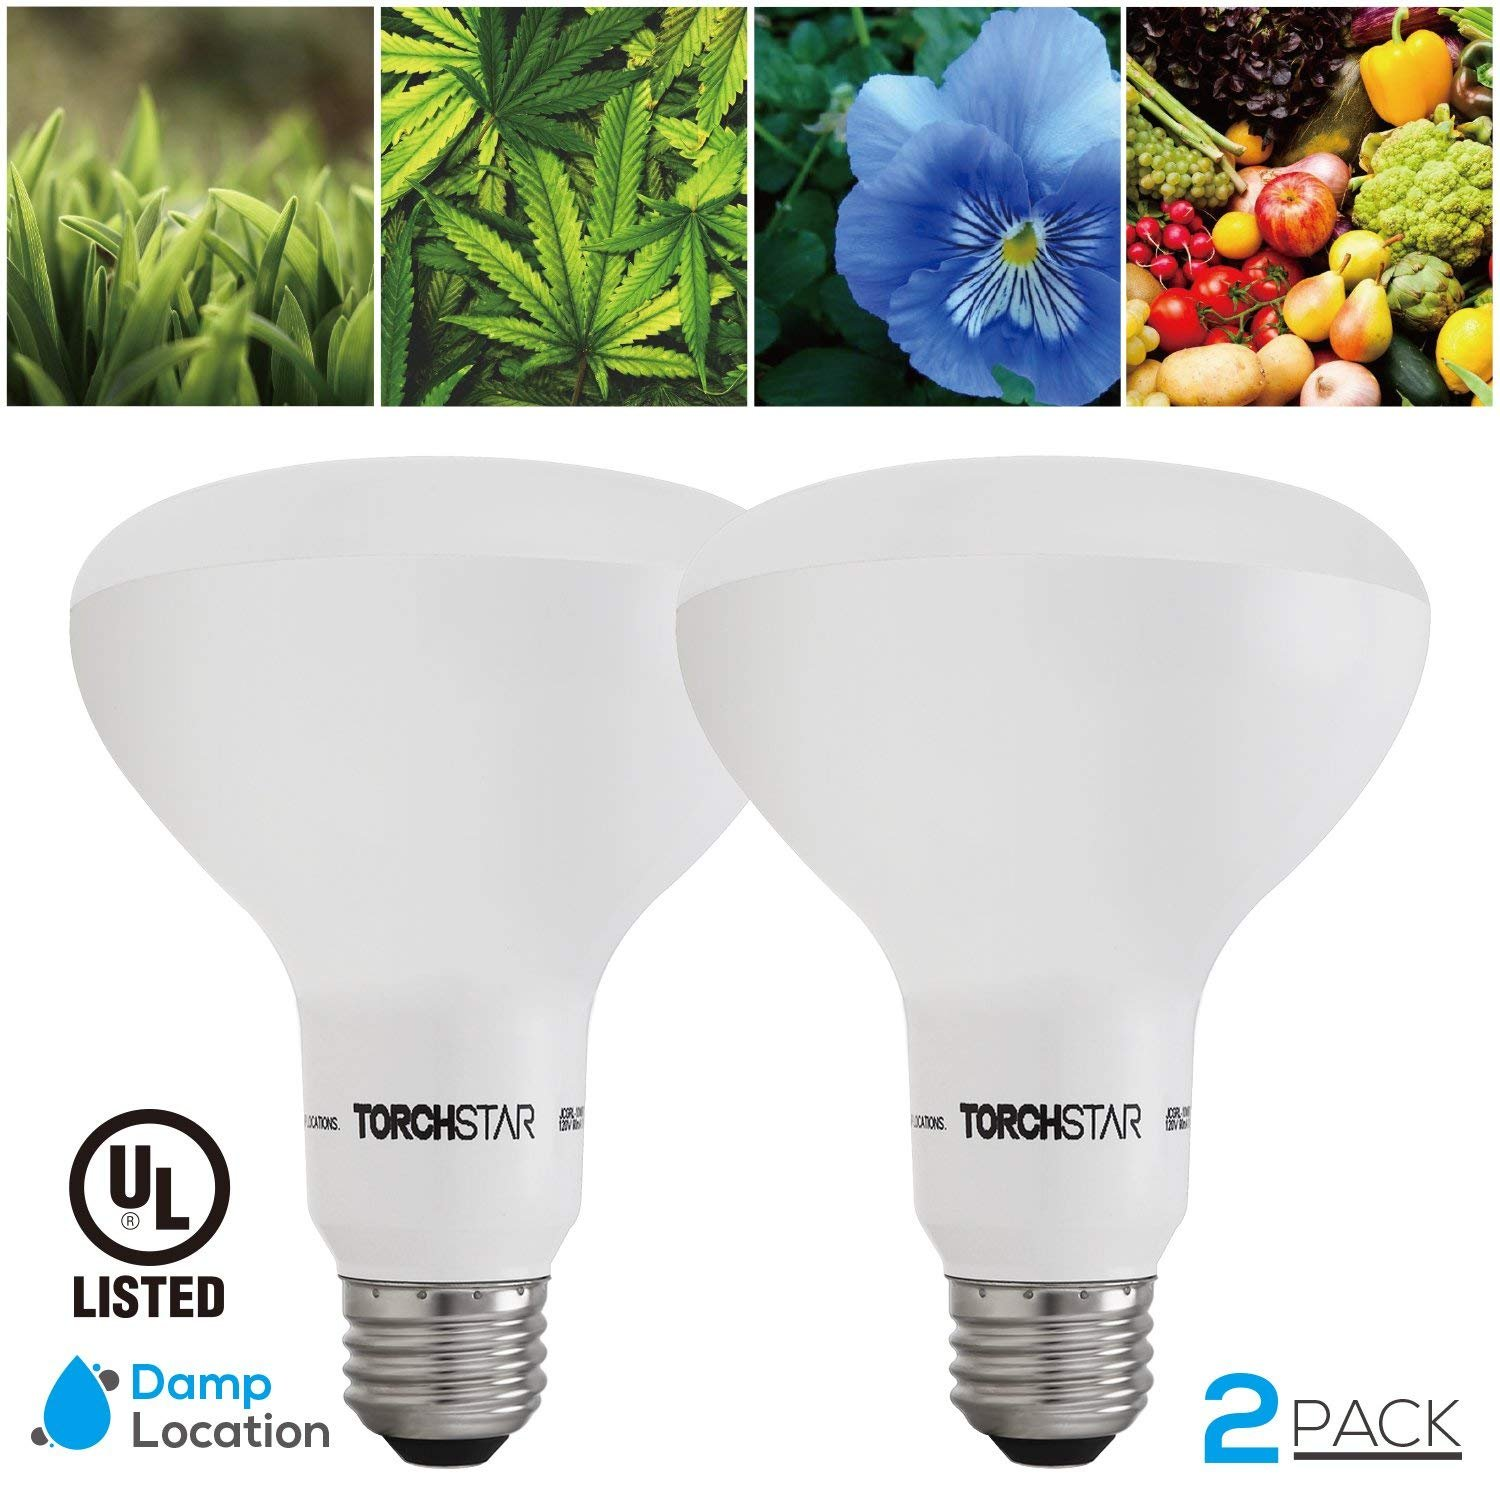 Grow Light Bulb, 10W BR30 Dimmable LED Plant Light UL-listed for Indoor Planting, Gardening, Green House, 120° Flood Light, 2 PACK